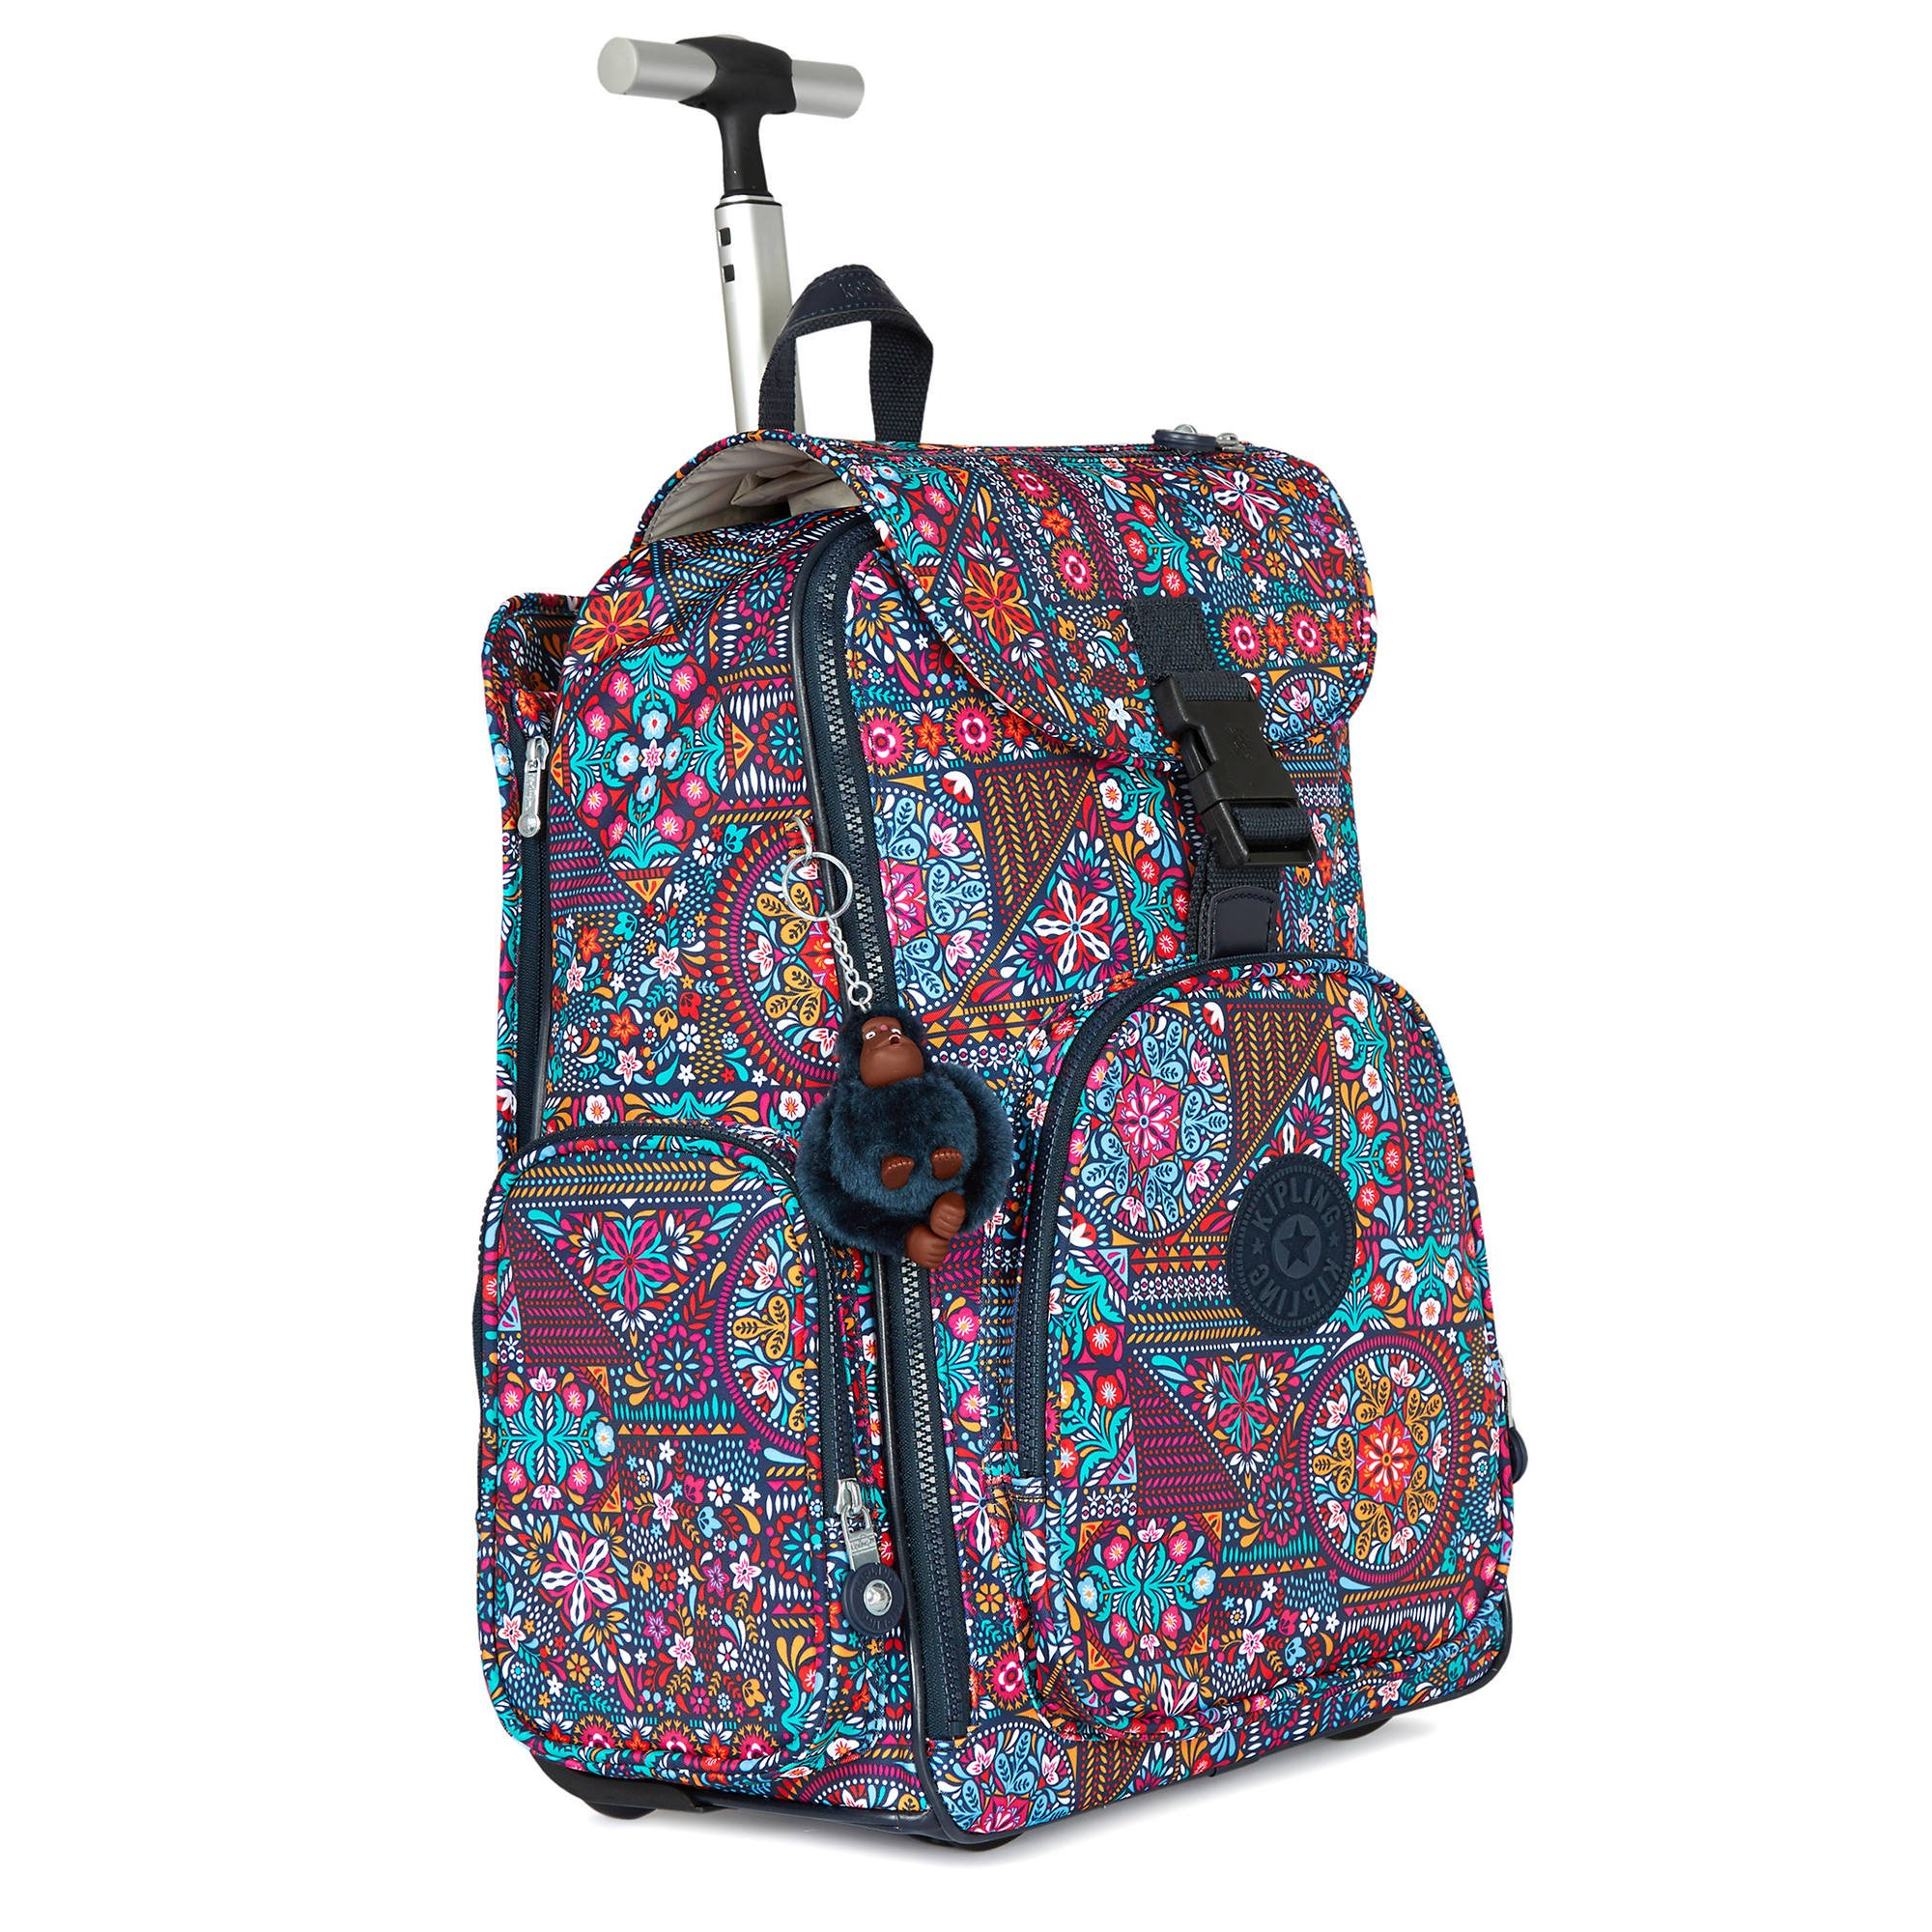 Kipling Women's Alcatraz Ii Printed Rolling Laptop Backpack One Size Dizzy Darling Multi by Kipling (Image #1)